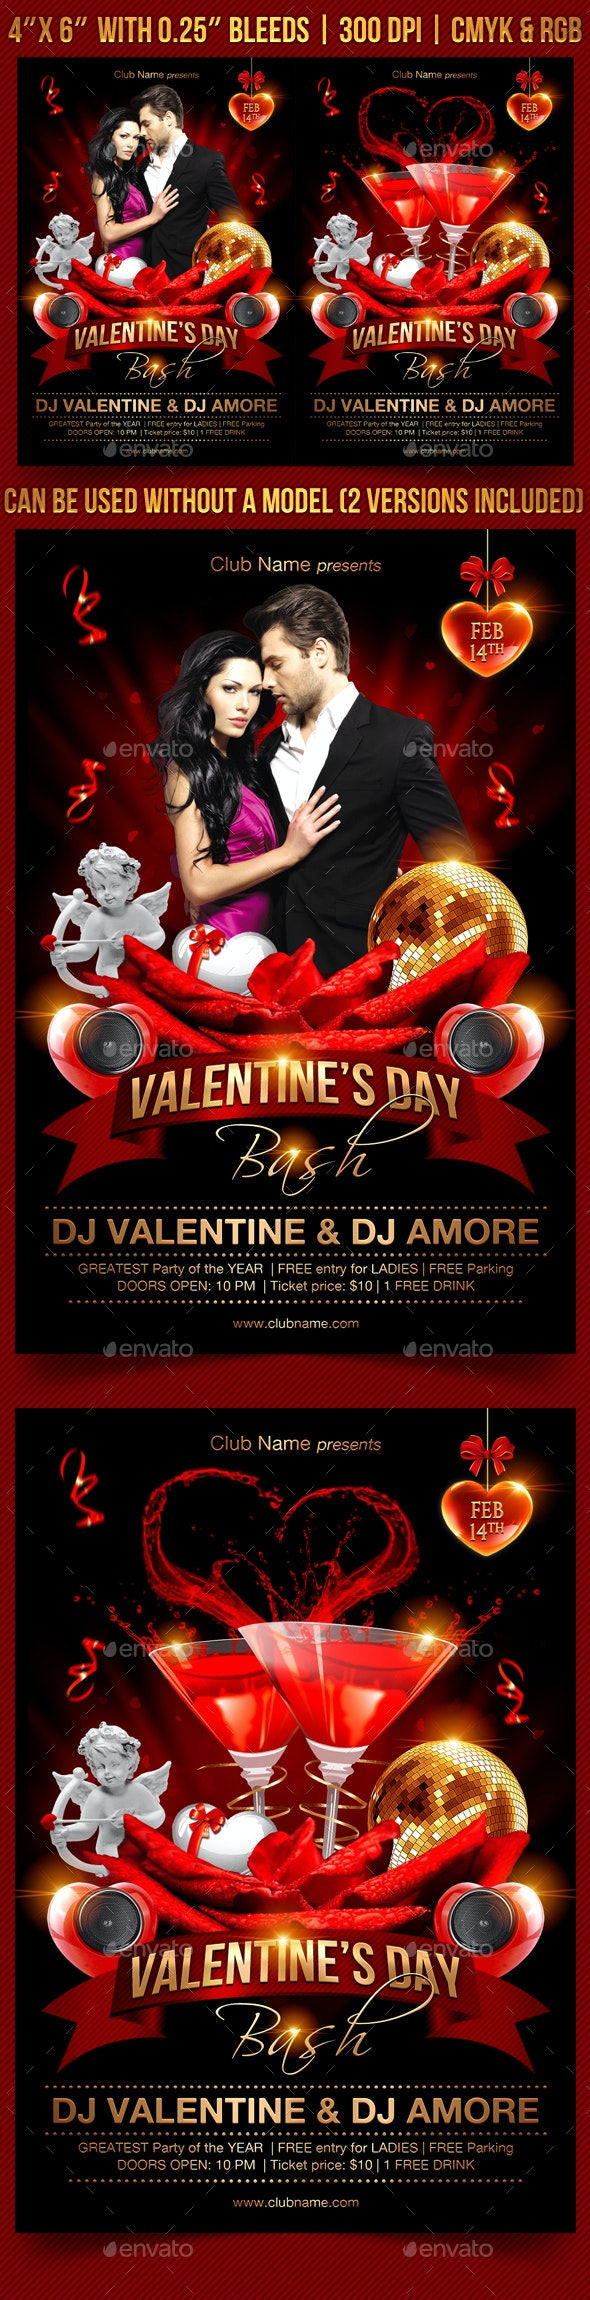 Valentines Day Bash Flyer Template - Clubs & Parties Events